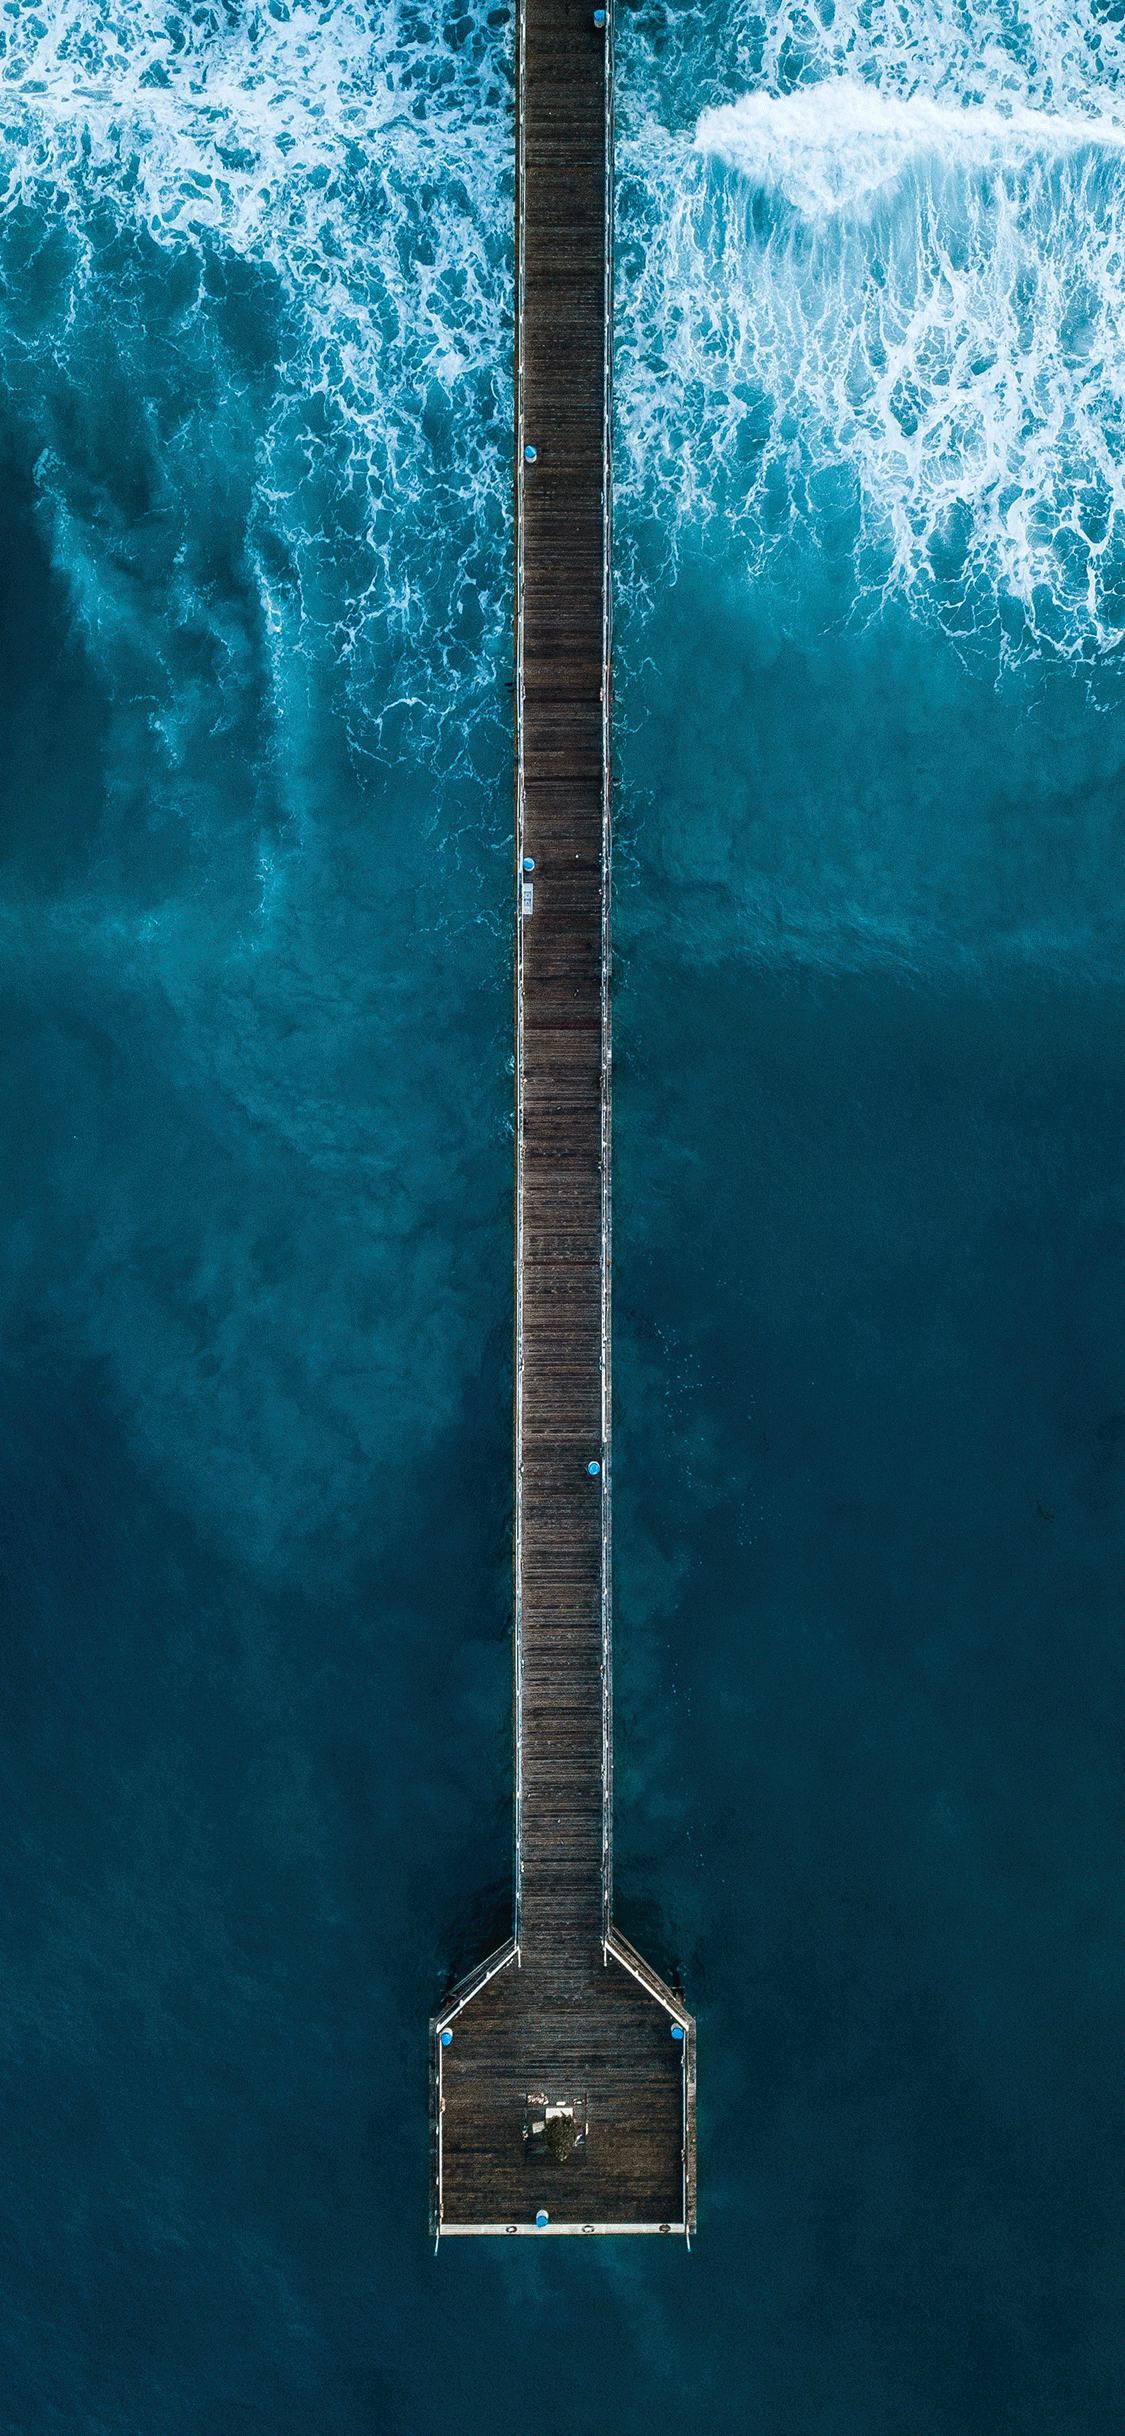 iPhone wallpaper aerial photo bridge Aerial Photos